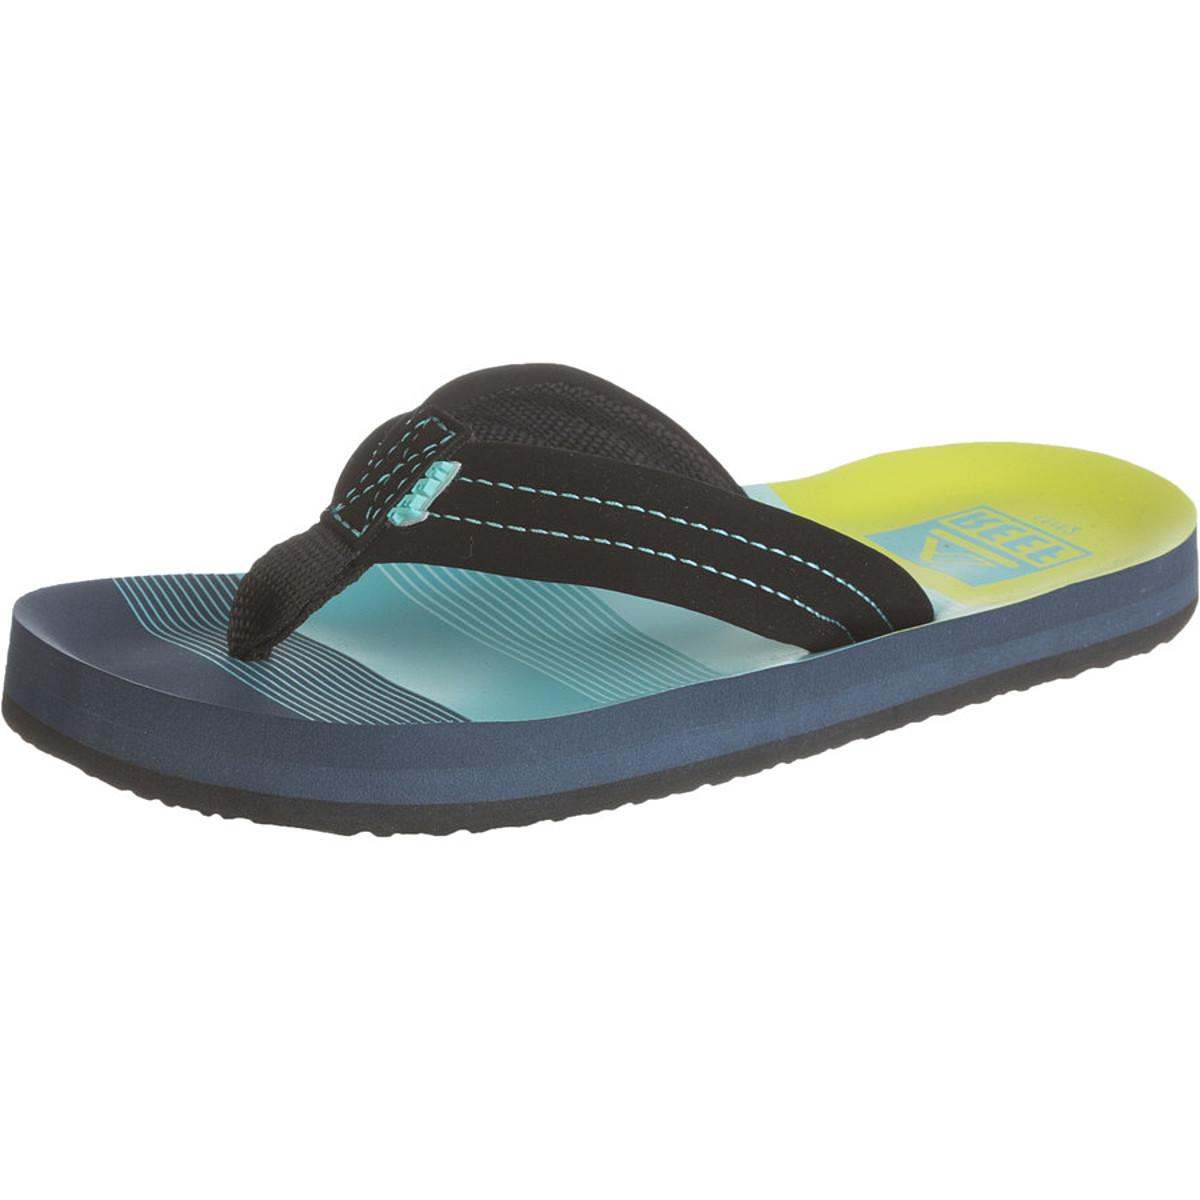 Reef Ahi Sandal - Boys' Aqua/Green, 11.0/12.0